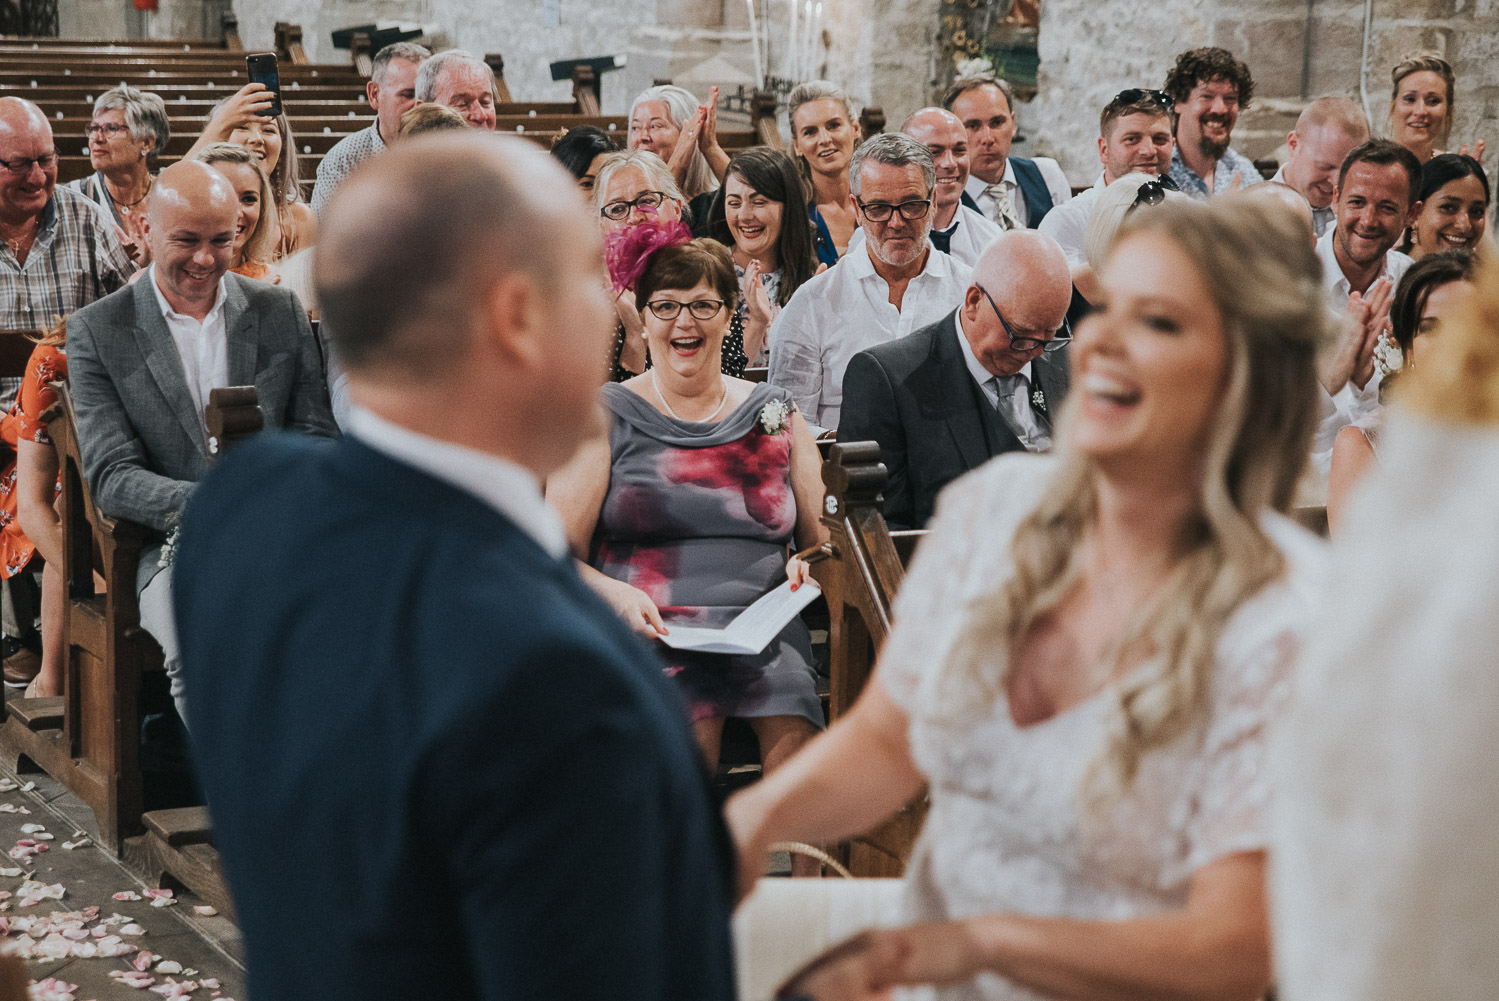 chateau_canet_carcassonne_wedding_katy_webb_photography_france_UK111